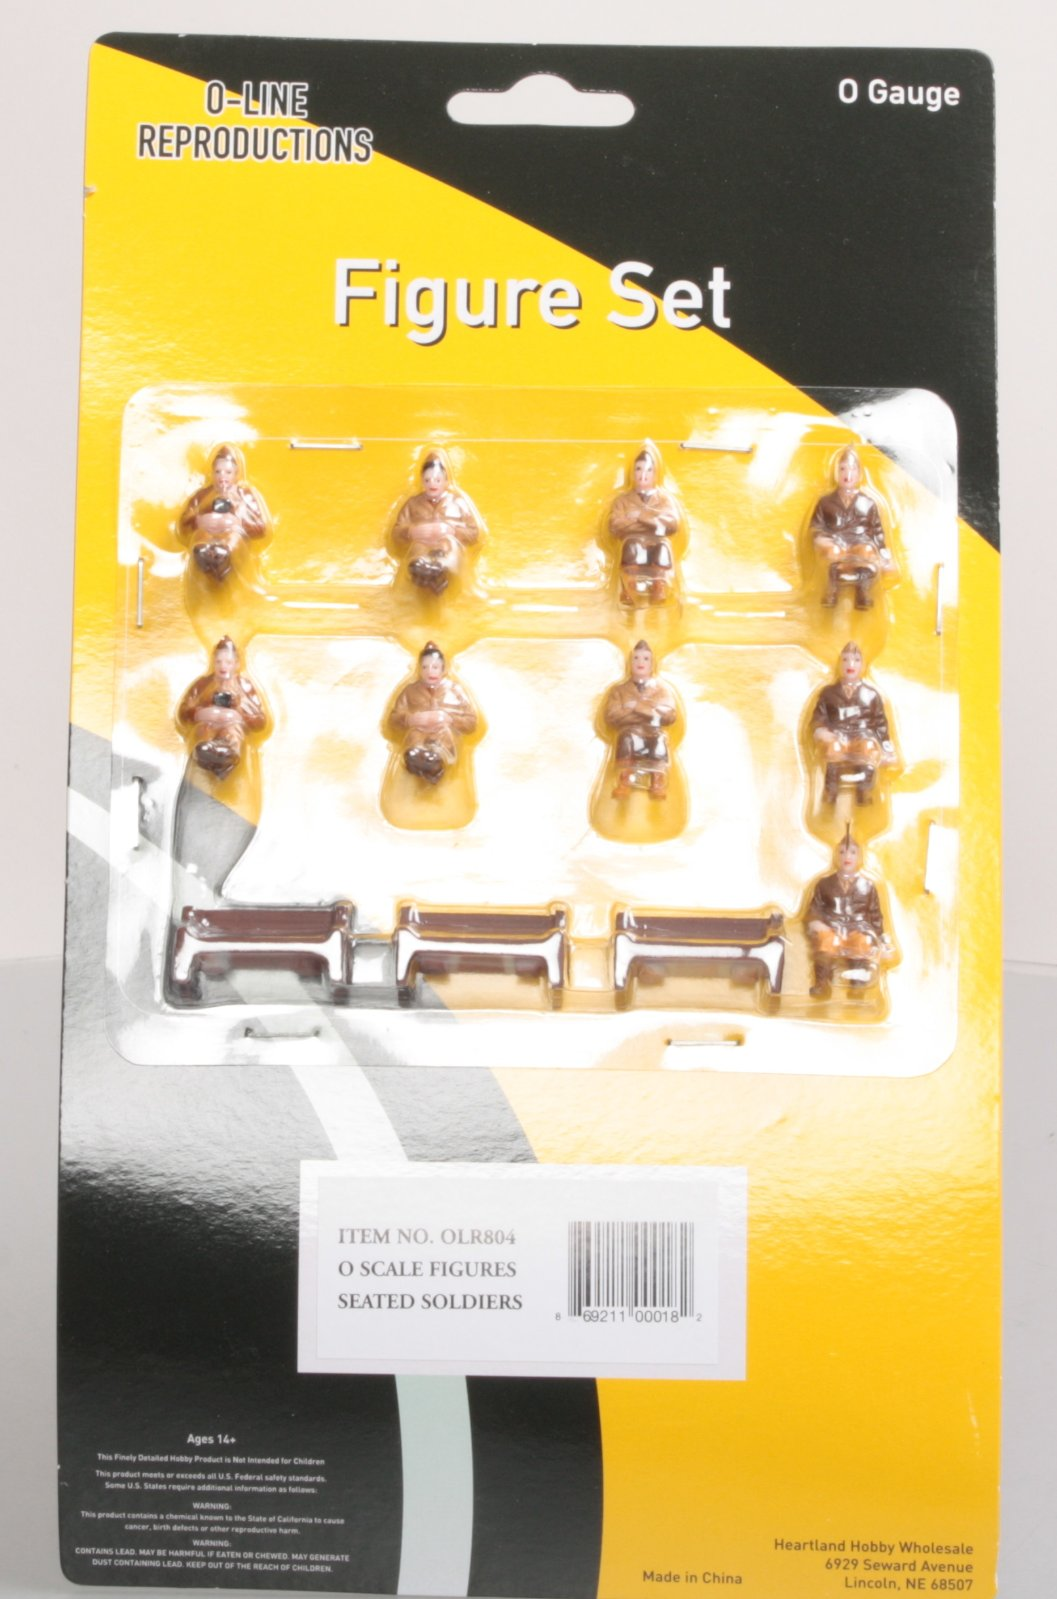 O-Line 804 Seated Soldiers & Benches Figure Set (12) This is an O-Line 804 Seated Soldiers & Benches Figure Set (12). These figures are fully painted in an assortment of clothing colors to enhance your toy train layout. Each individual person is hand painted in a realistic/non-shiny finish with full facial features and clothing details that are truly realistic in appearance.Condition: Factory New (C-9All original; unused; factory rubs and evidence of handling, shipping and factory test run.Standards for all toy train related accessory items apply to the visual appearance of the item and do not consider the operating functionality of the equipment.Condition and Grading Standards are subjective, at best, and are intended to act as a guide. )Operational Status: FunctionalThis item is brand new from the factory.Original Box: Yes (P-9May have store stamps and price tags. Has inner liners.)Manufacturer: O-LineModel Number: 804MSRP: $44.00Scale/Era: O ModernModel Type: FiguresAvailability: Ships within 3 Business Days!The Trainz SKU for this item is P12168212. Track: 12168212 - 1021-E (Suite 2740-200)  - 001 - TrainzAuctionGroup00UNK - TDIDUNK